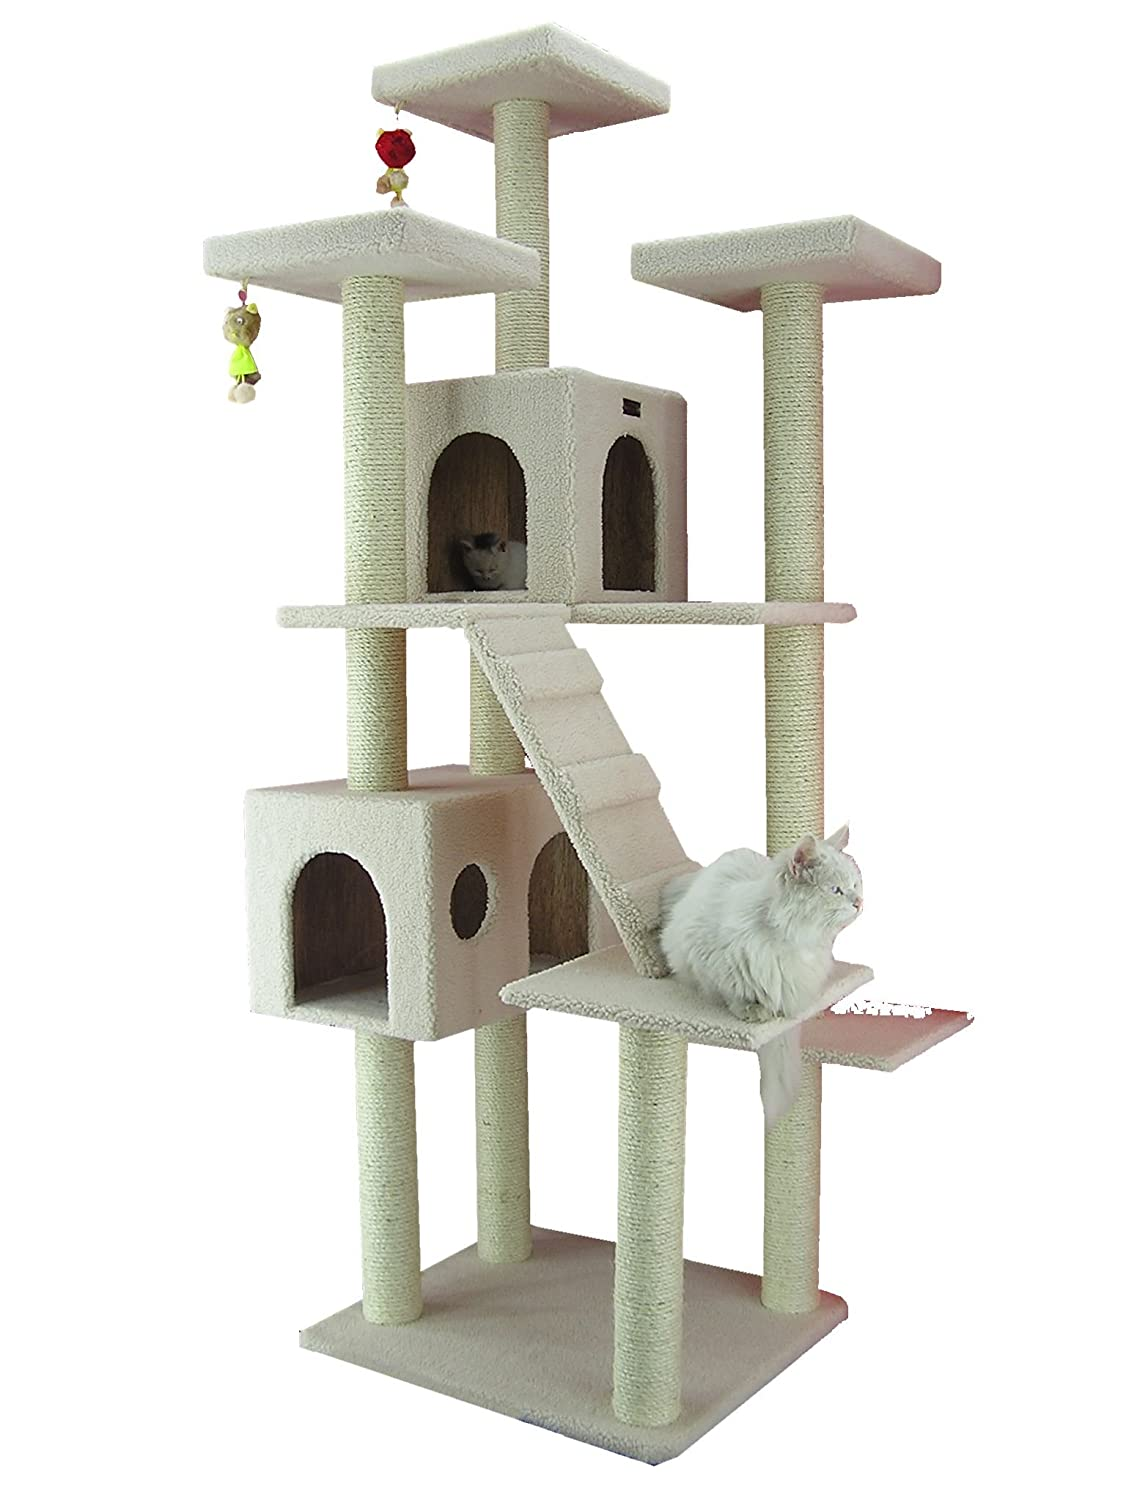 Amazon.com: Cat Houses & Condos - Cat Trees & Condos: Pet Supplies